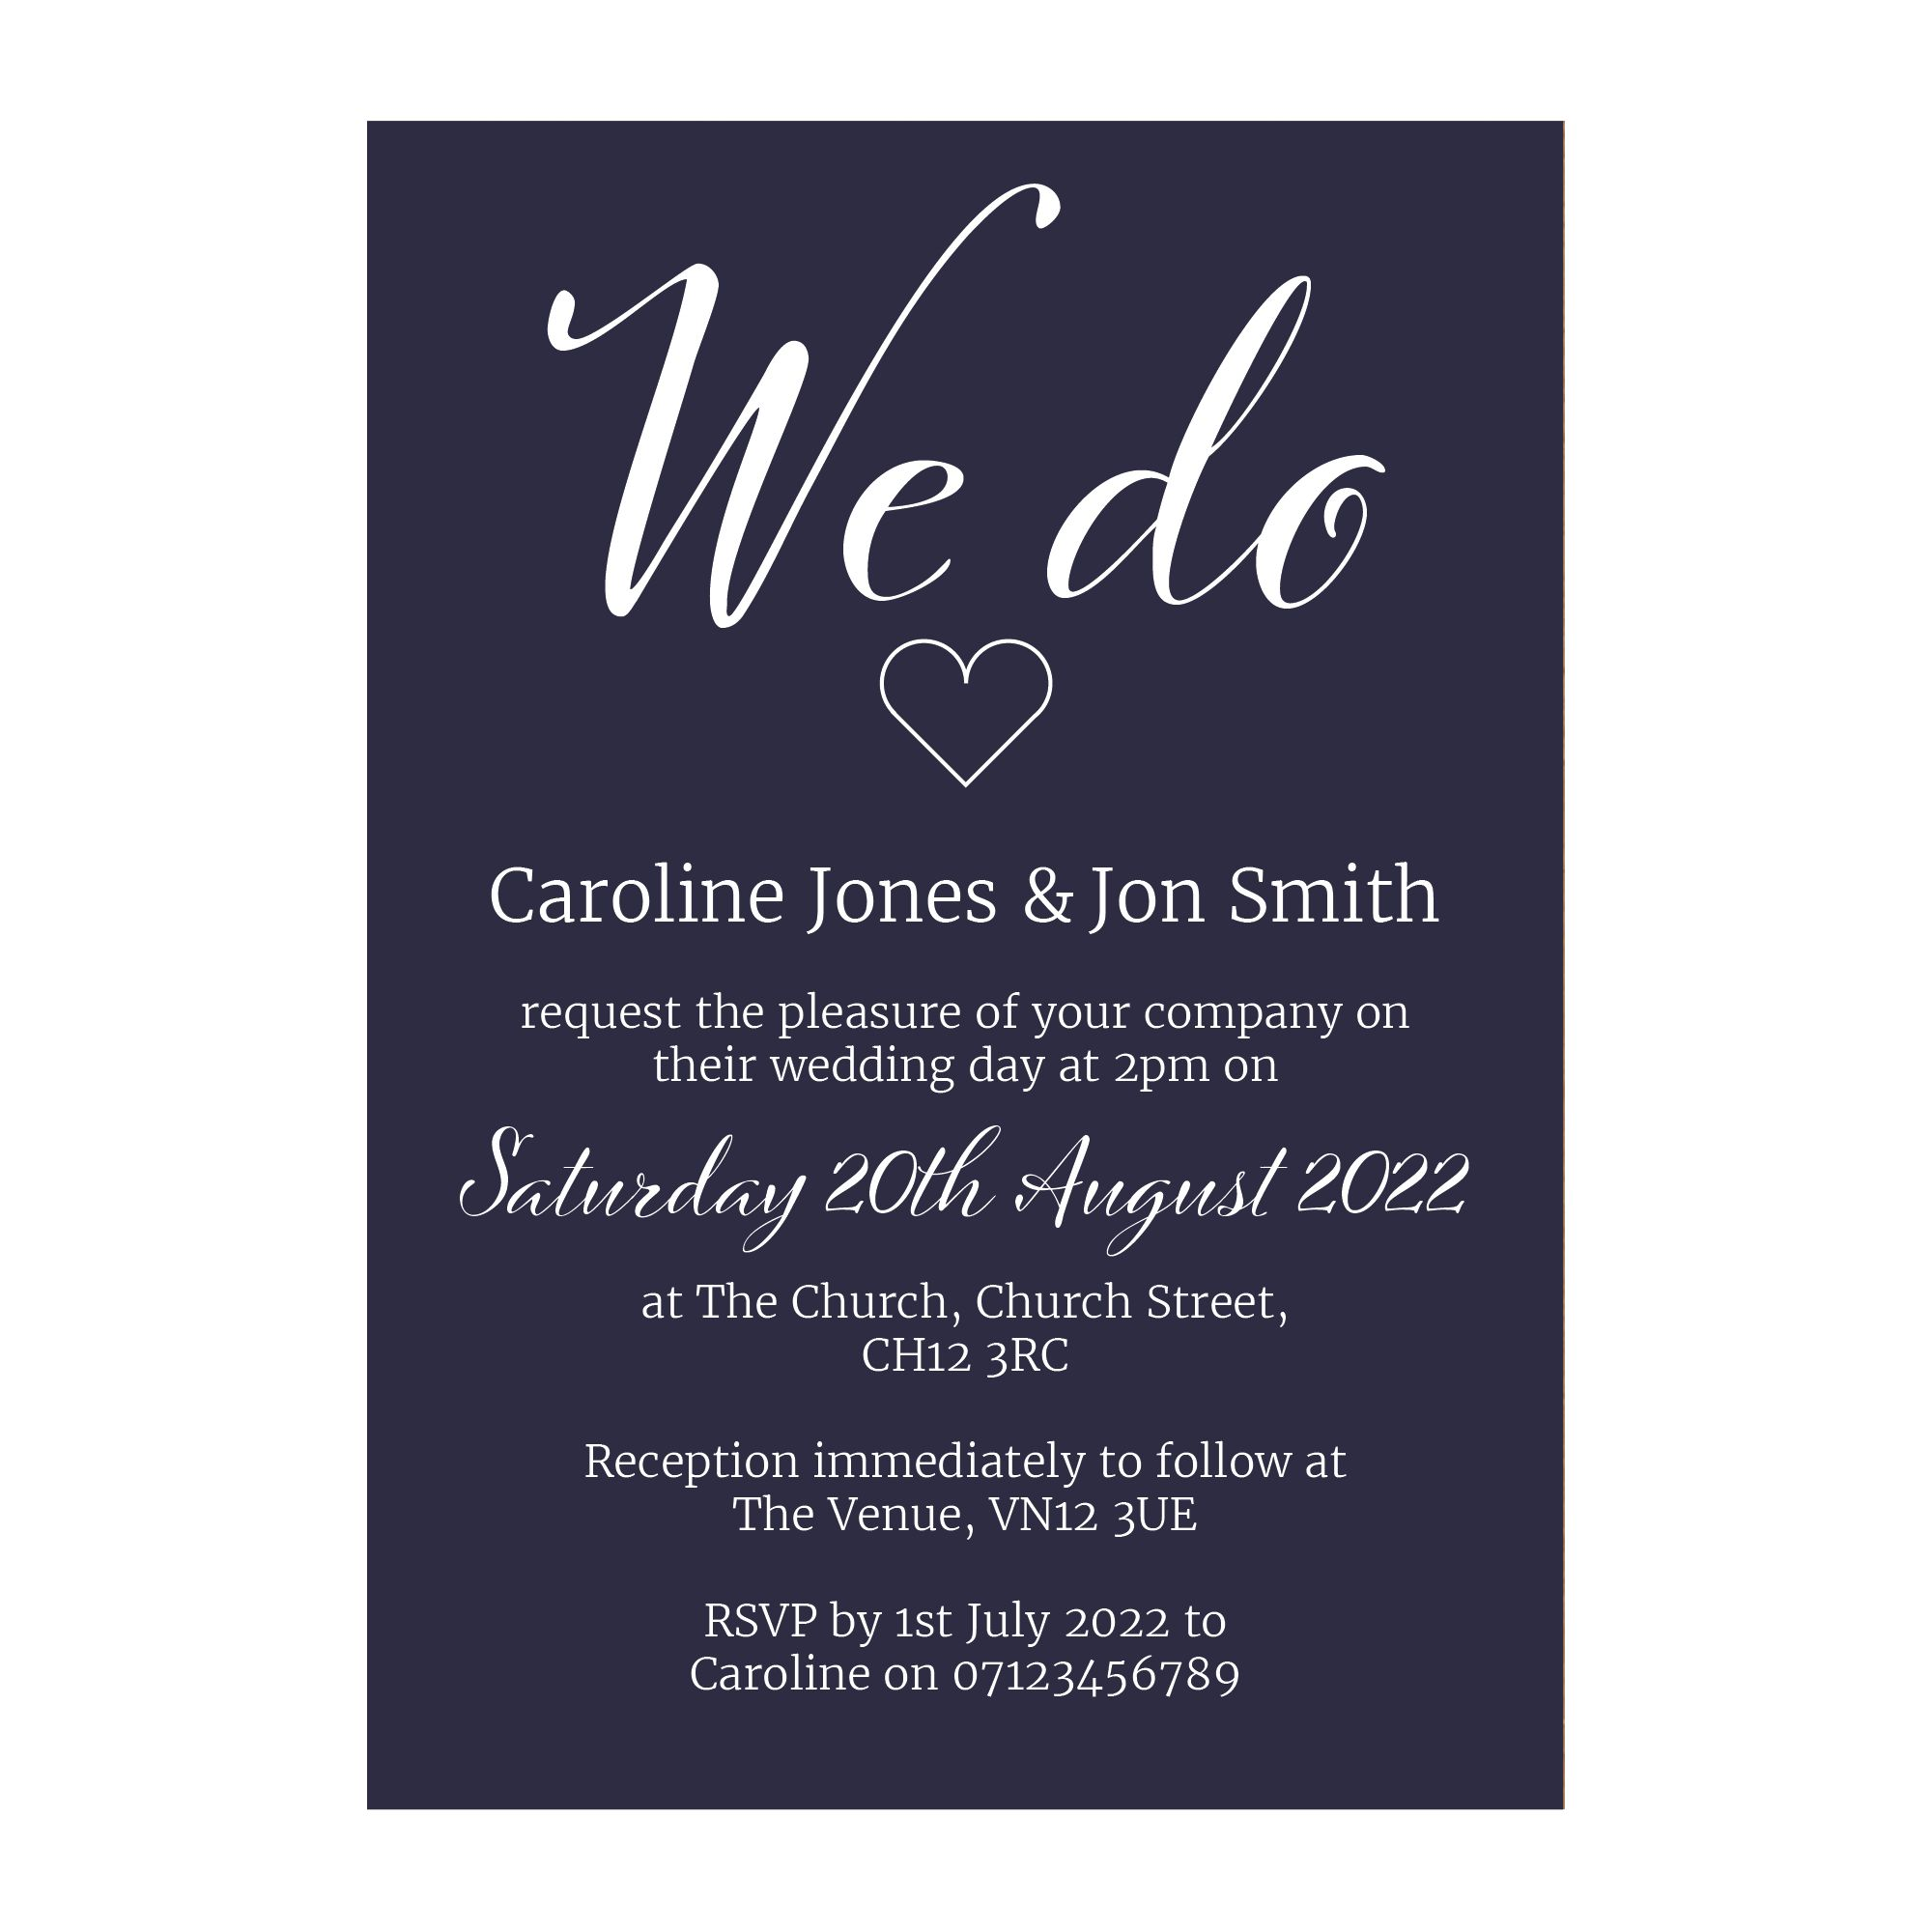 Navy Blue with White Ink We Do Decorative Wedding Invitations